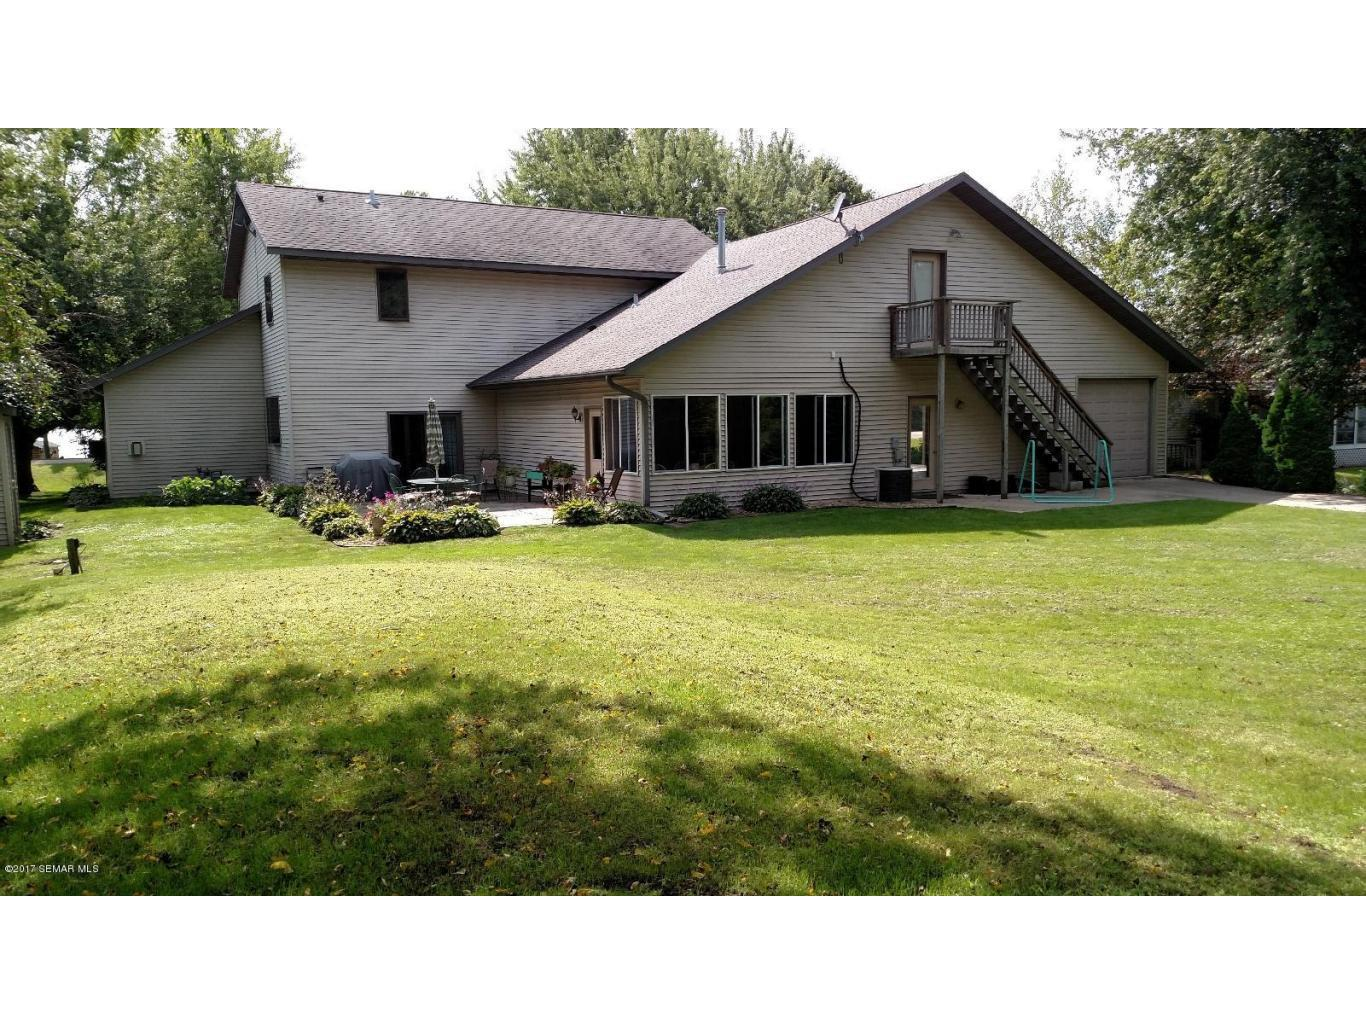 Homes For Sale On Cannon Lake Faribault Mn